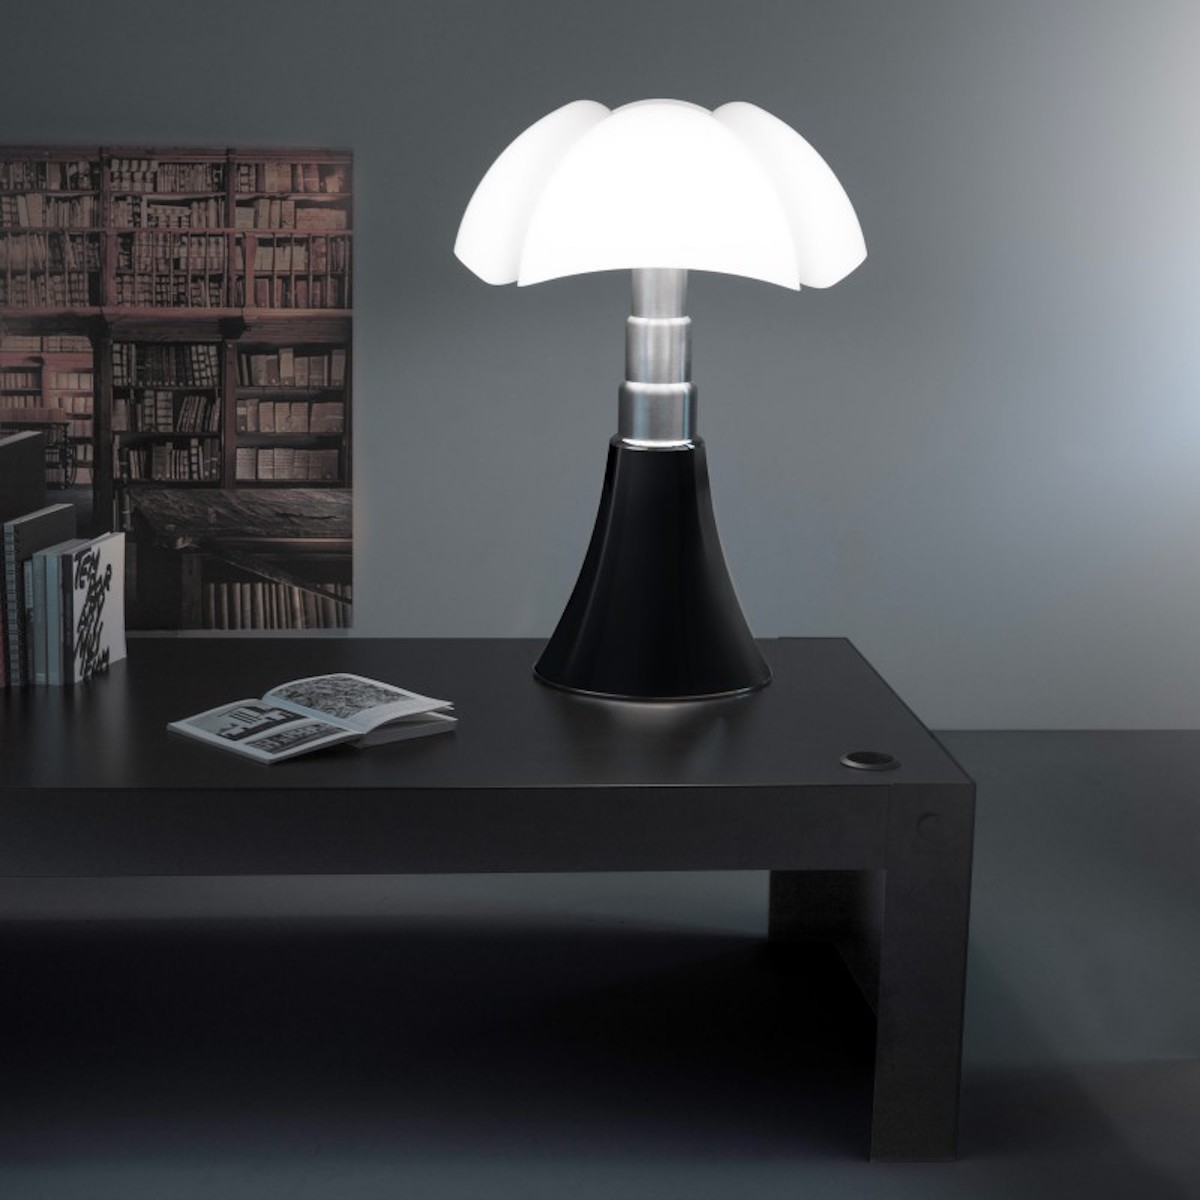 Küchenlampe Led Table Lamp Pipistrello Medium Led Dark Brown Dimmable H50 62cm Ø40cm Martinelli Luce